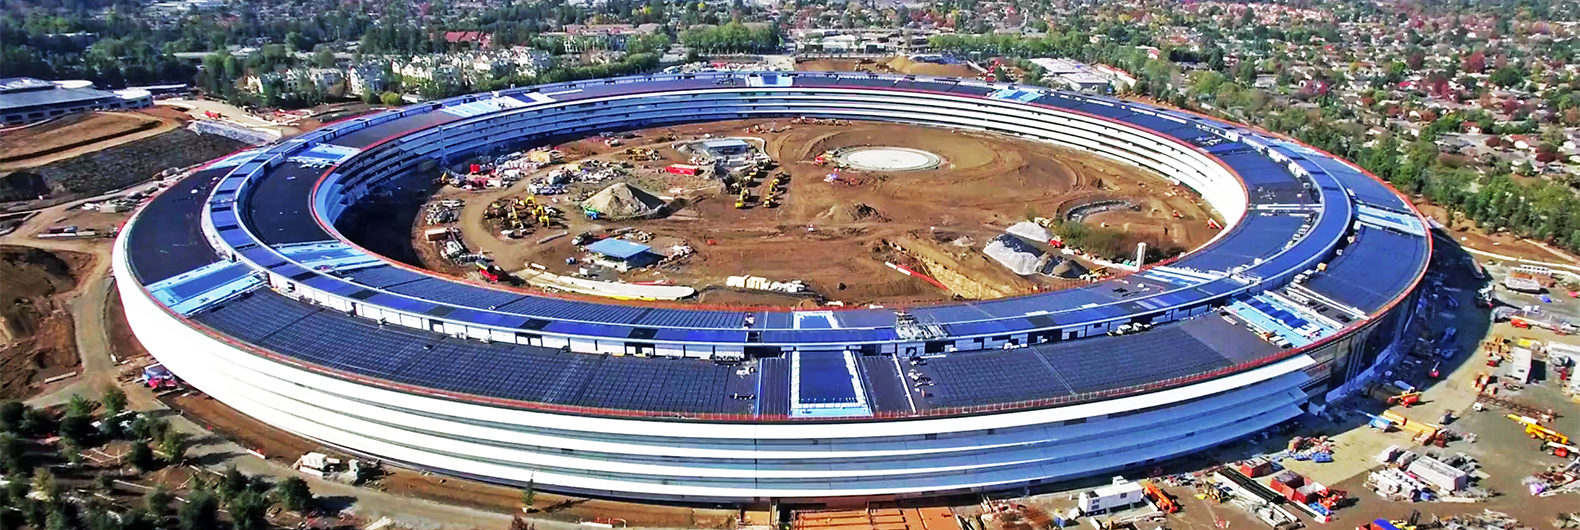 apples office. Apple\u0027s New Solar-powered Spaceship Office Is Nearly Complete Apples